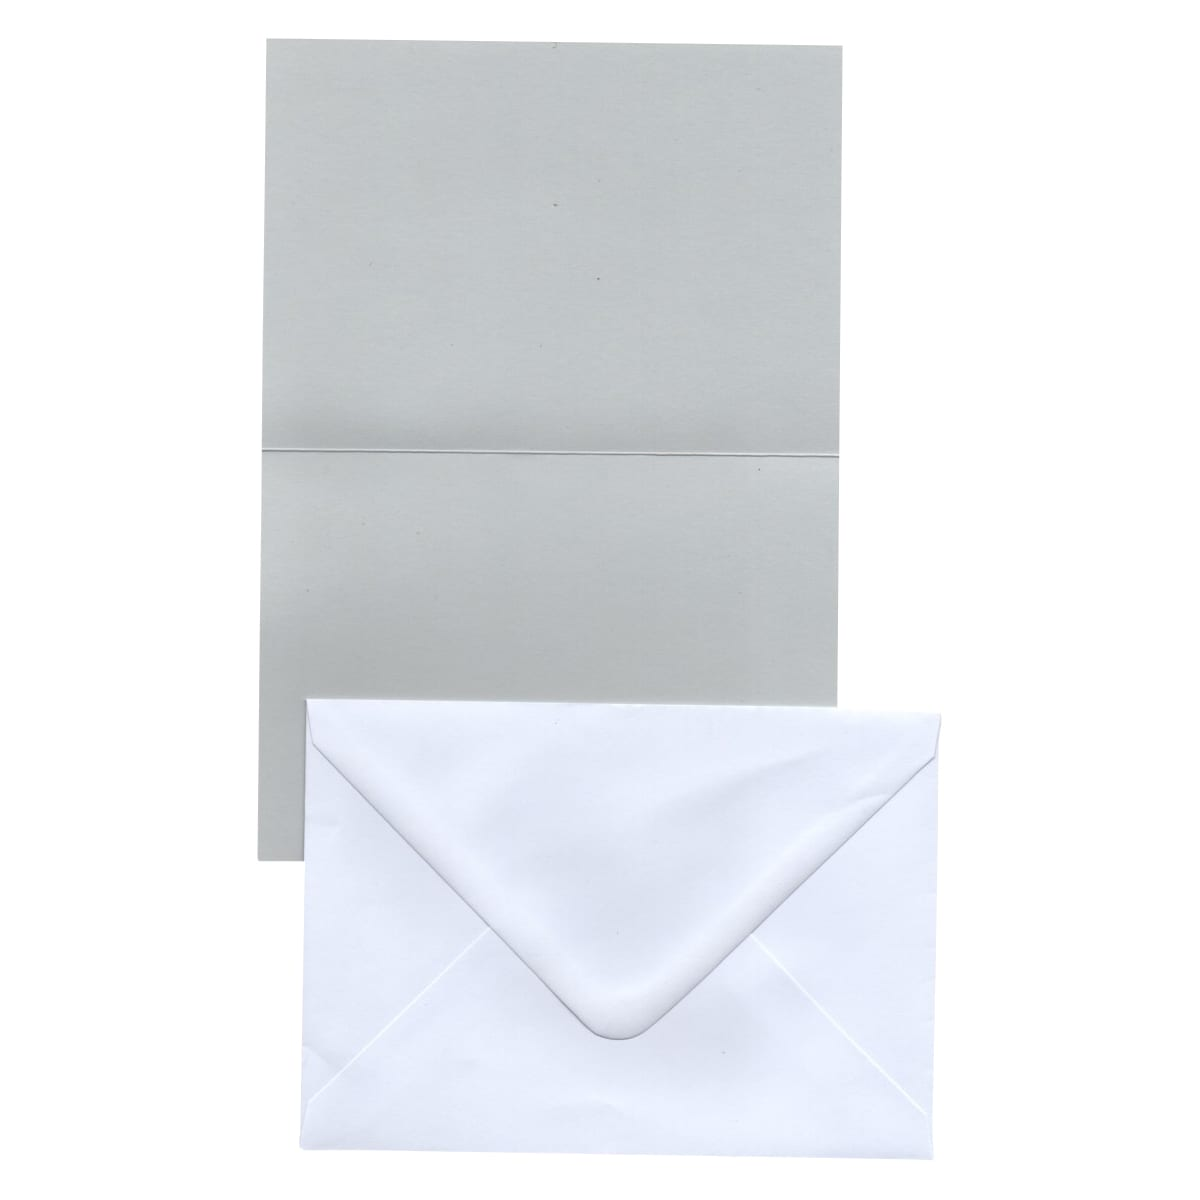 A6 PALE GREY CARD BLANKS & ENVELOPES (PACK OF 20)